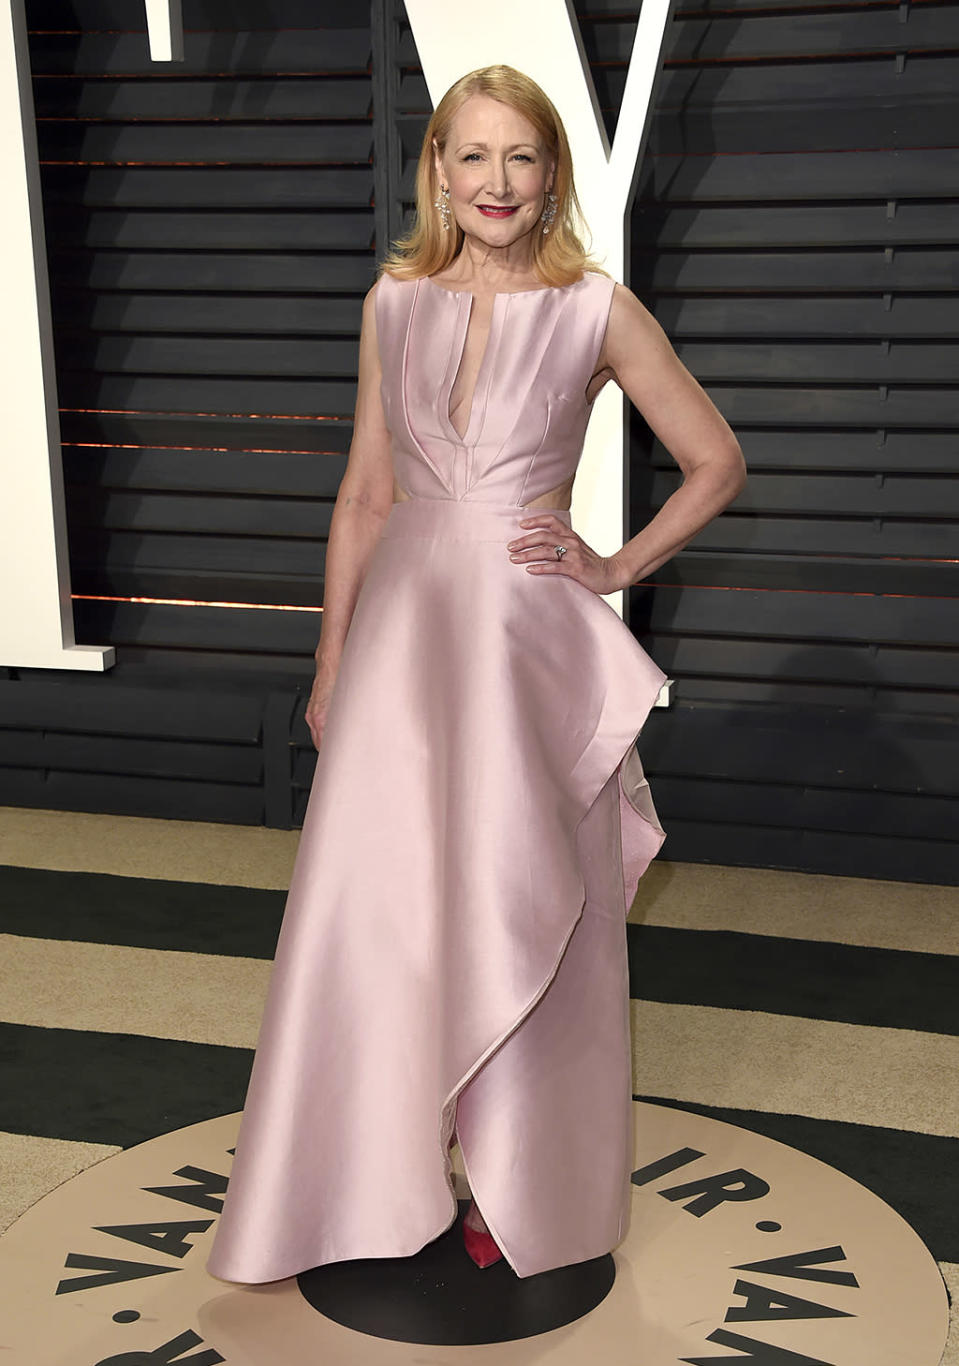 <p>Patricia Clarkson arrives at the Vanity Fair Oscar Party on Sunday, Feb. 26, 2017, in Beverly Hills, Calif. (Photo by Evan Agostini/Invision/AP) </p>